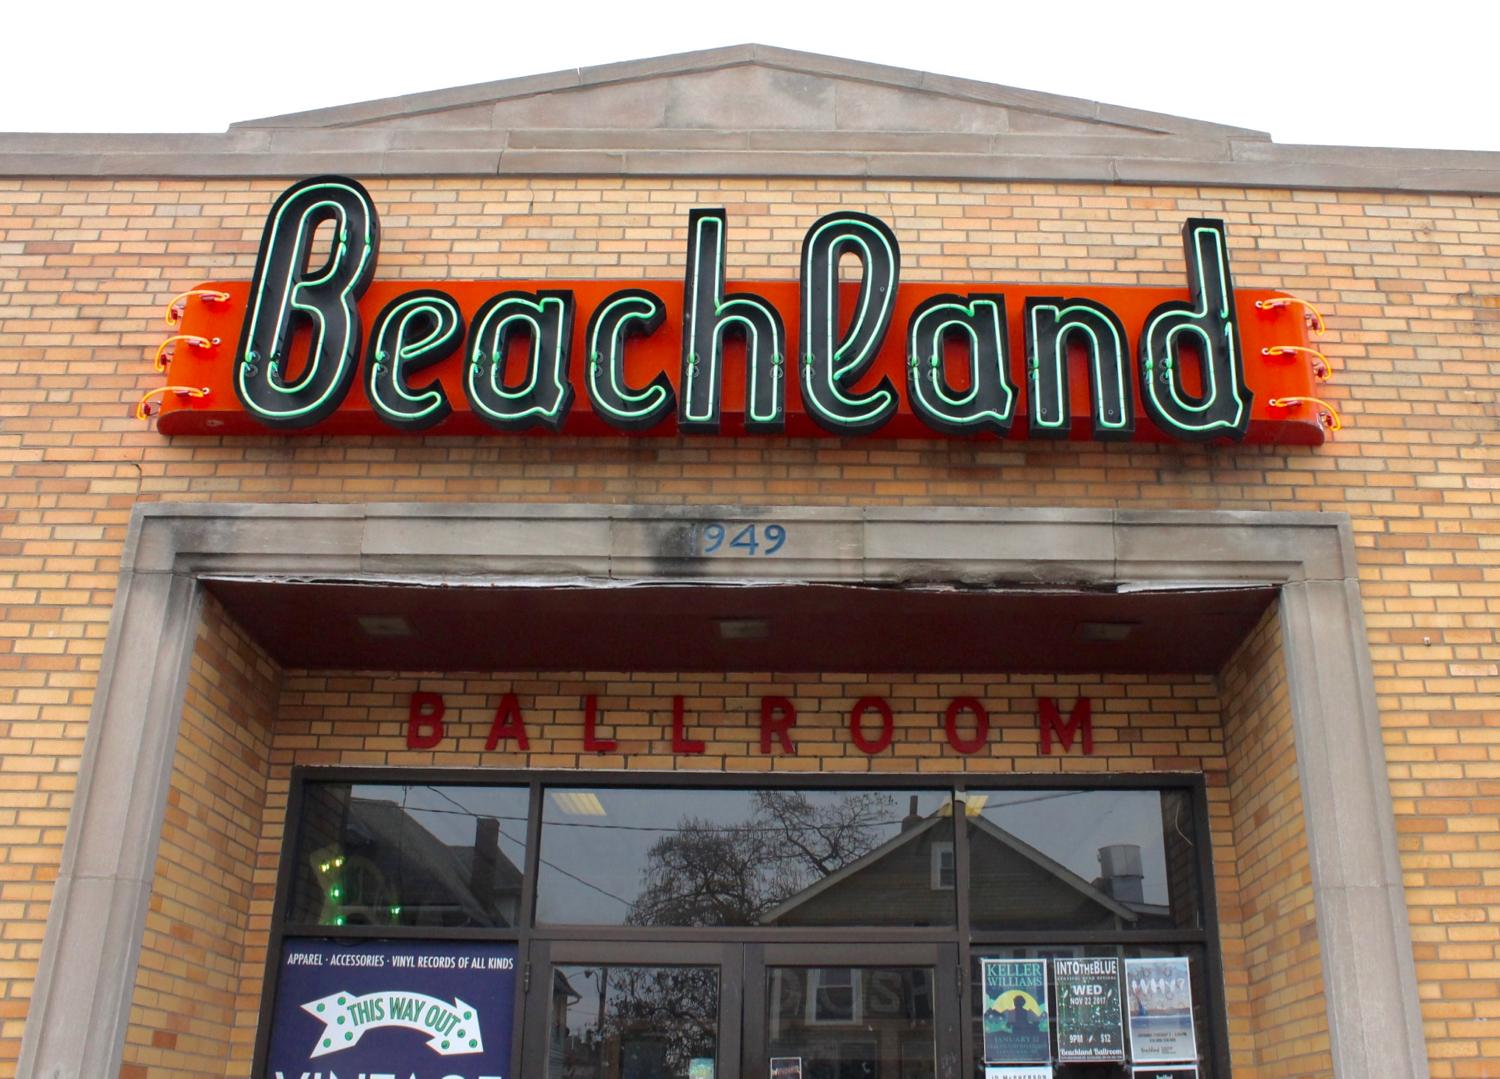 "<p>The Beachland Ballroom and Tavern has it all: a music venue, record store, vintage and curiosities shop, and of course, a tavern. If you pop in on a Sunday, you'll even find a DJ there spinning their favorite vinyl for their ""Rockin' Brunch."" They are located in Cleveland's Waterloo Arts and Entertainment District in the North Shore Collinwood neighborhood of Cleveland. ADDRESS: 15711 Waterloo Rd., Cleveland, OH 44110 / Image: Rose Brewington // Published: 11.22.17<br></p>"